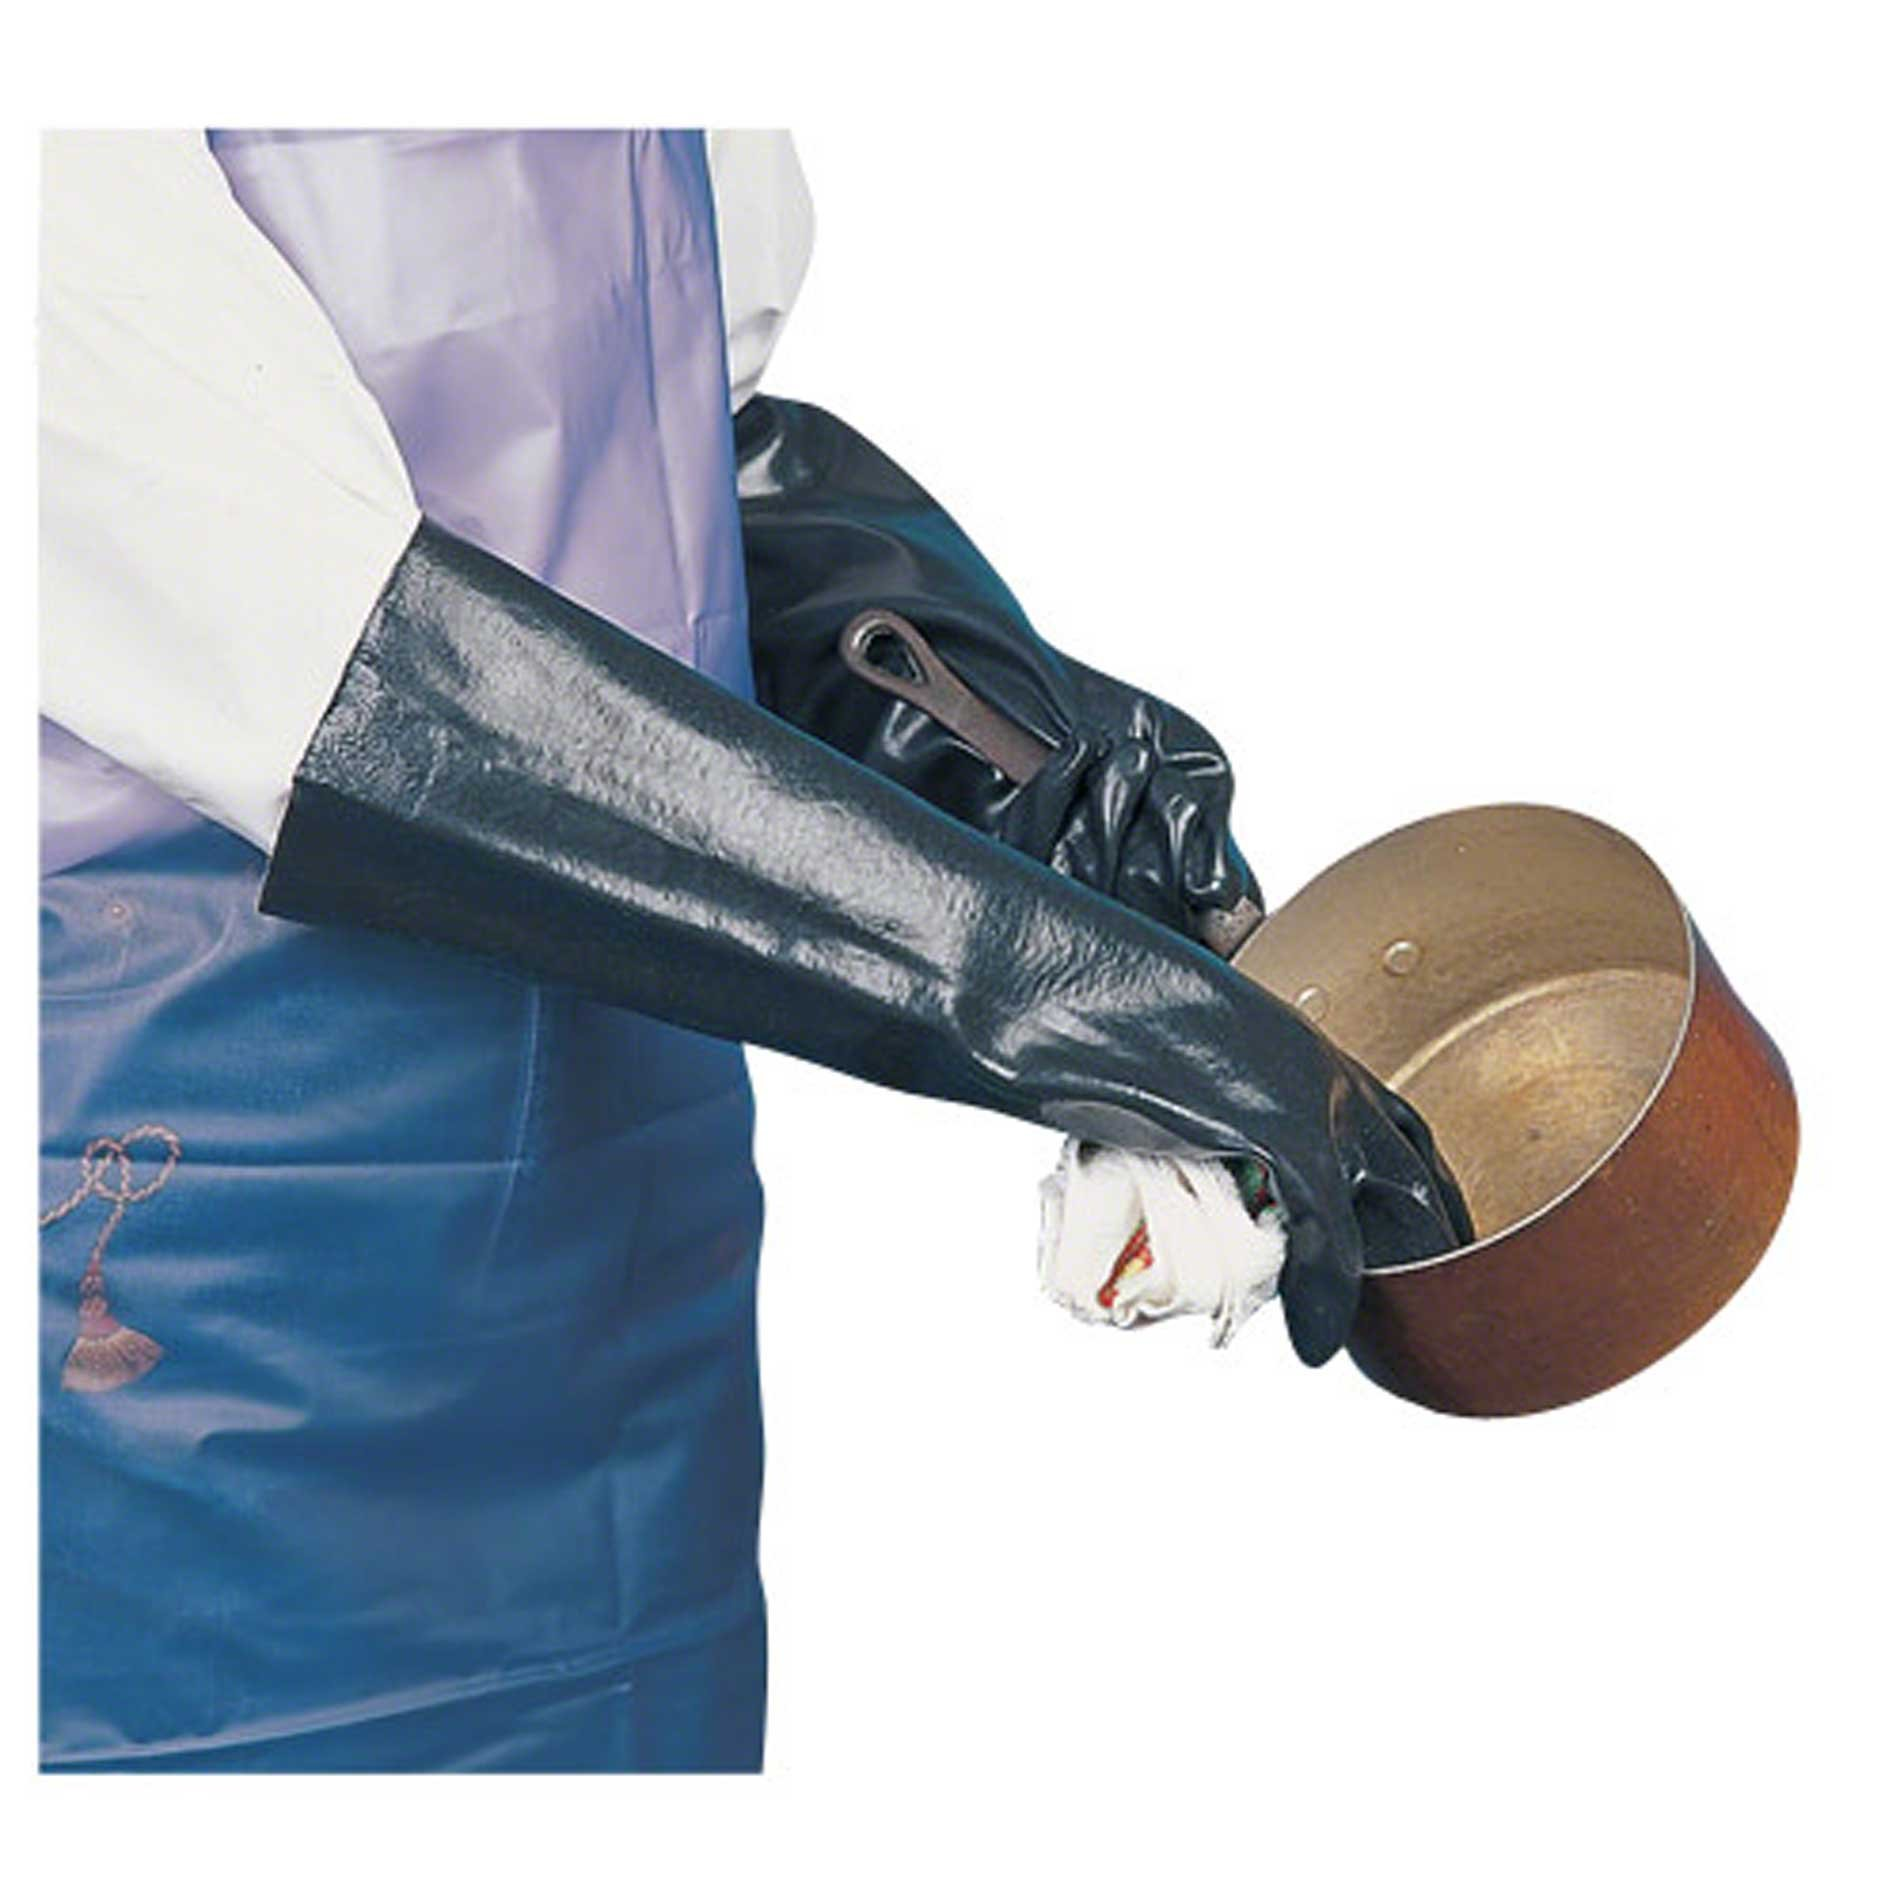 San Jamar-Chef Revival 887 Pot and Sink Gloves by San Jamar-Chef Revival